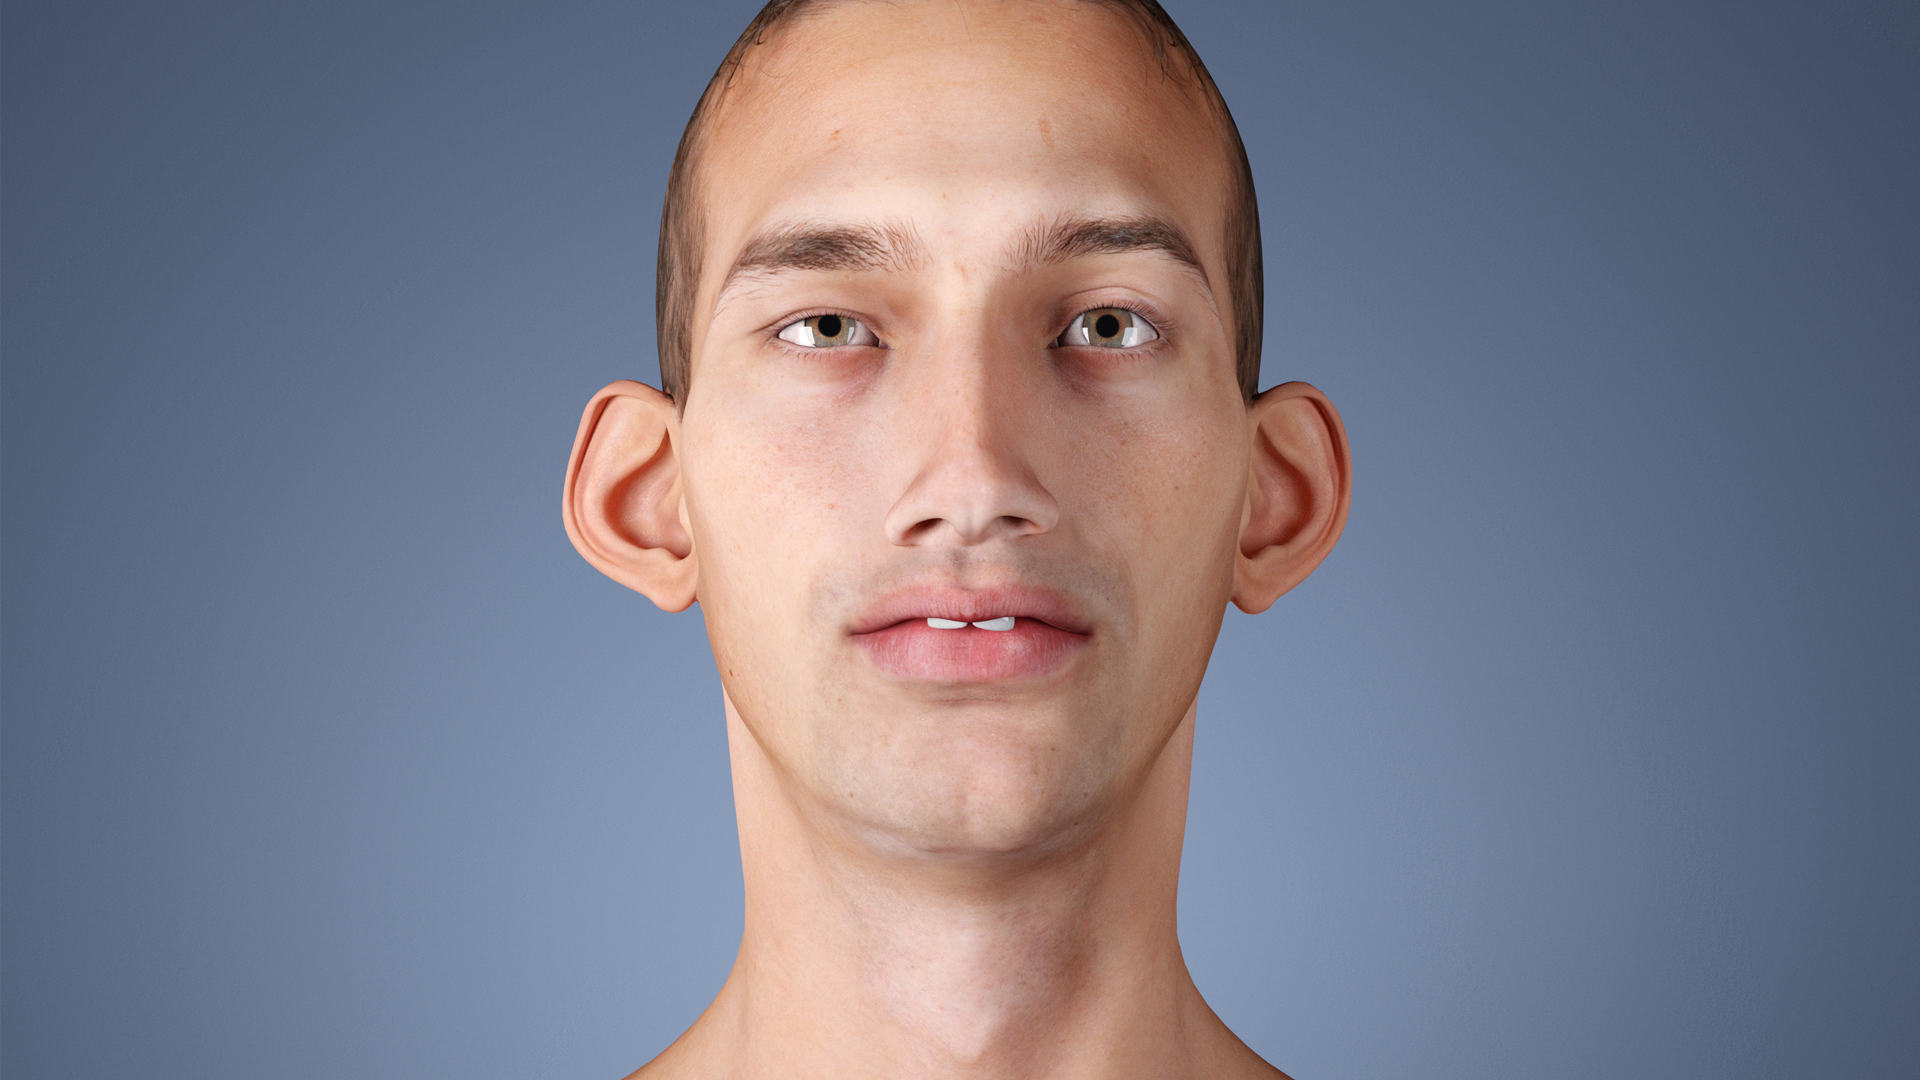 Billy morph